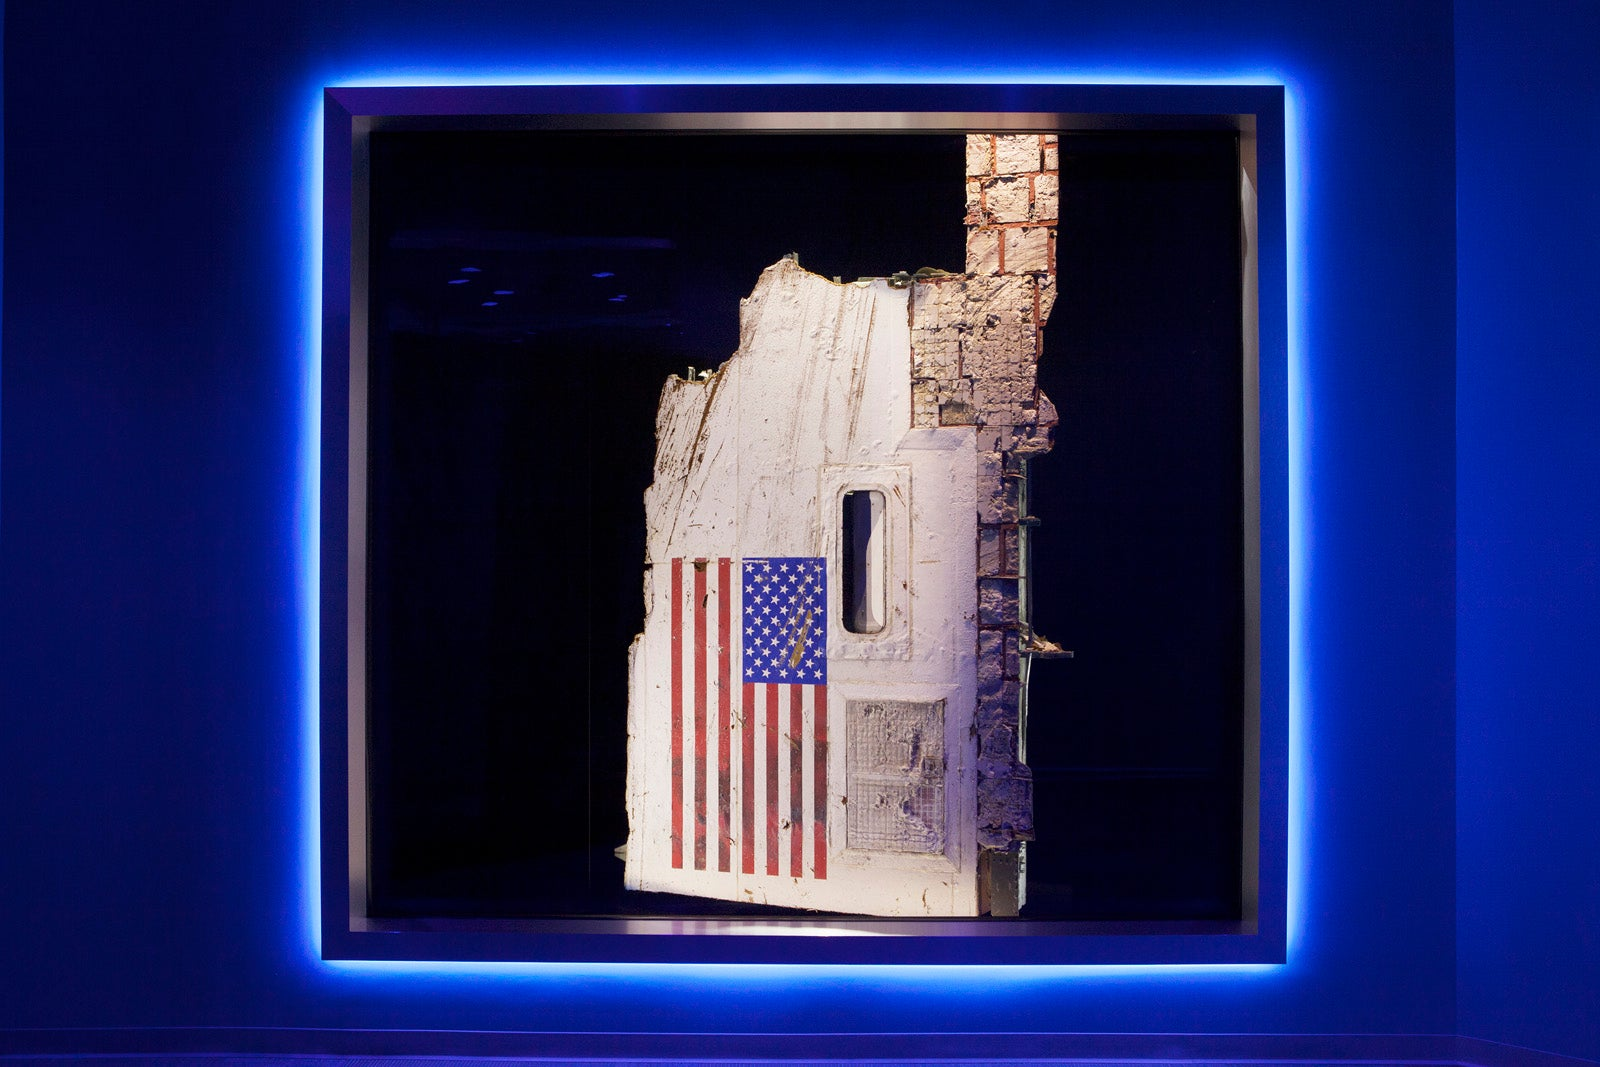 Space Shuttle Wreckage Fills This Heartbreaking NASA Exhibit